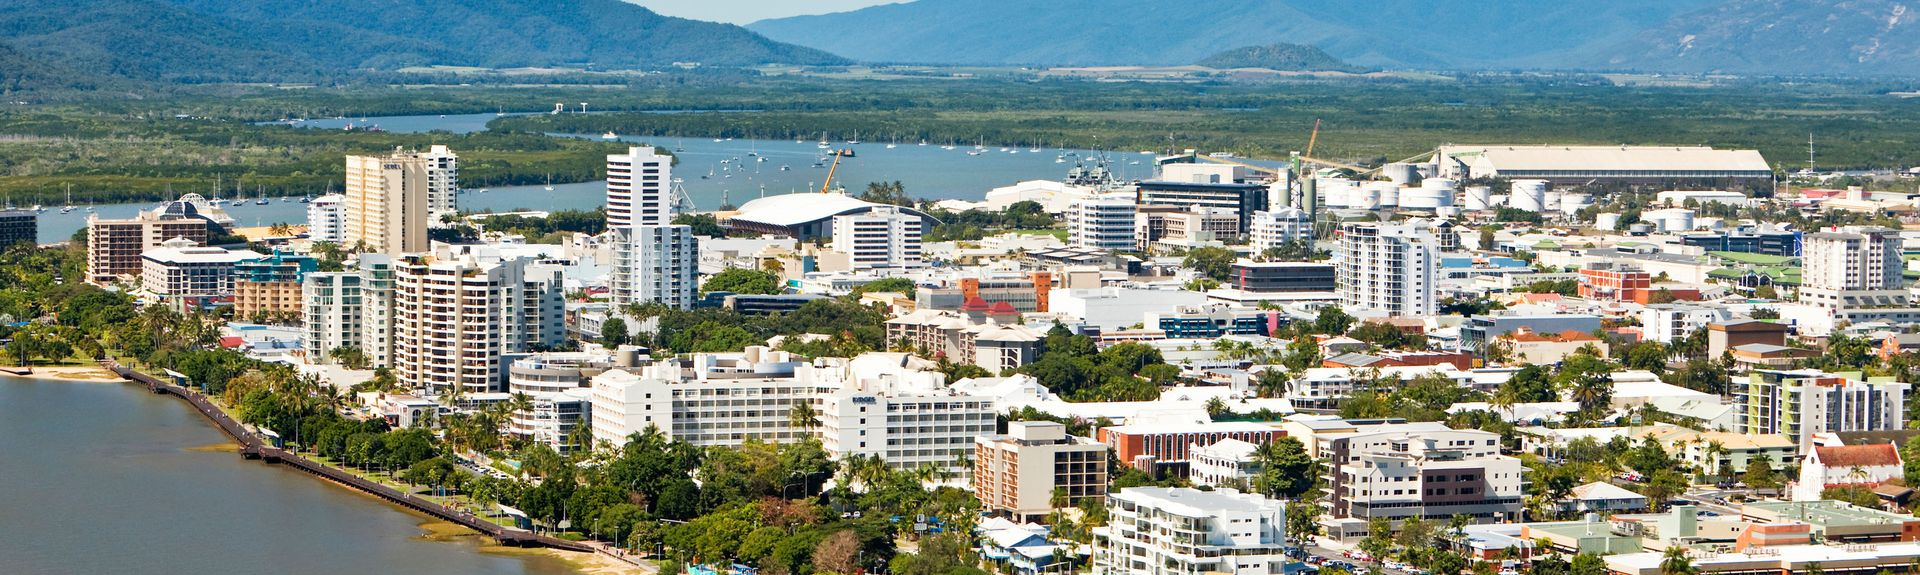 Cairns Qld Au Vacation Rentals Houses More Homeaway